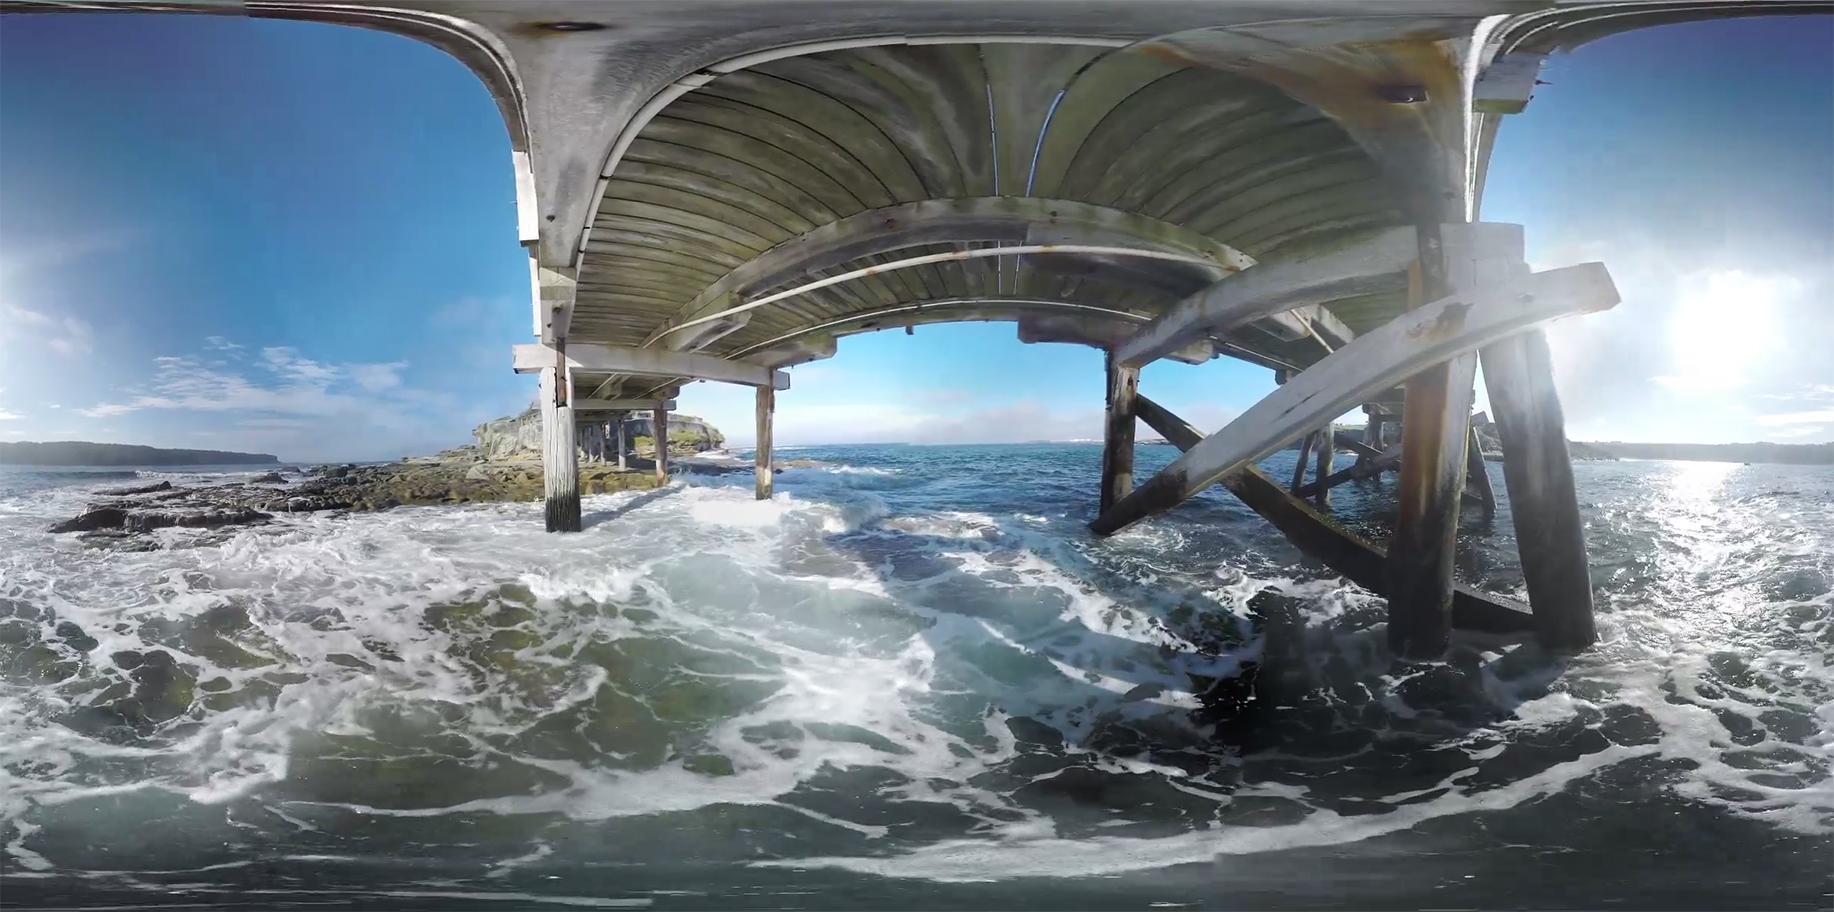 Here is what the stitched footage lookedlike (flipped 180 degrees) before being warped into a stereographic projection.